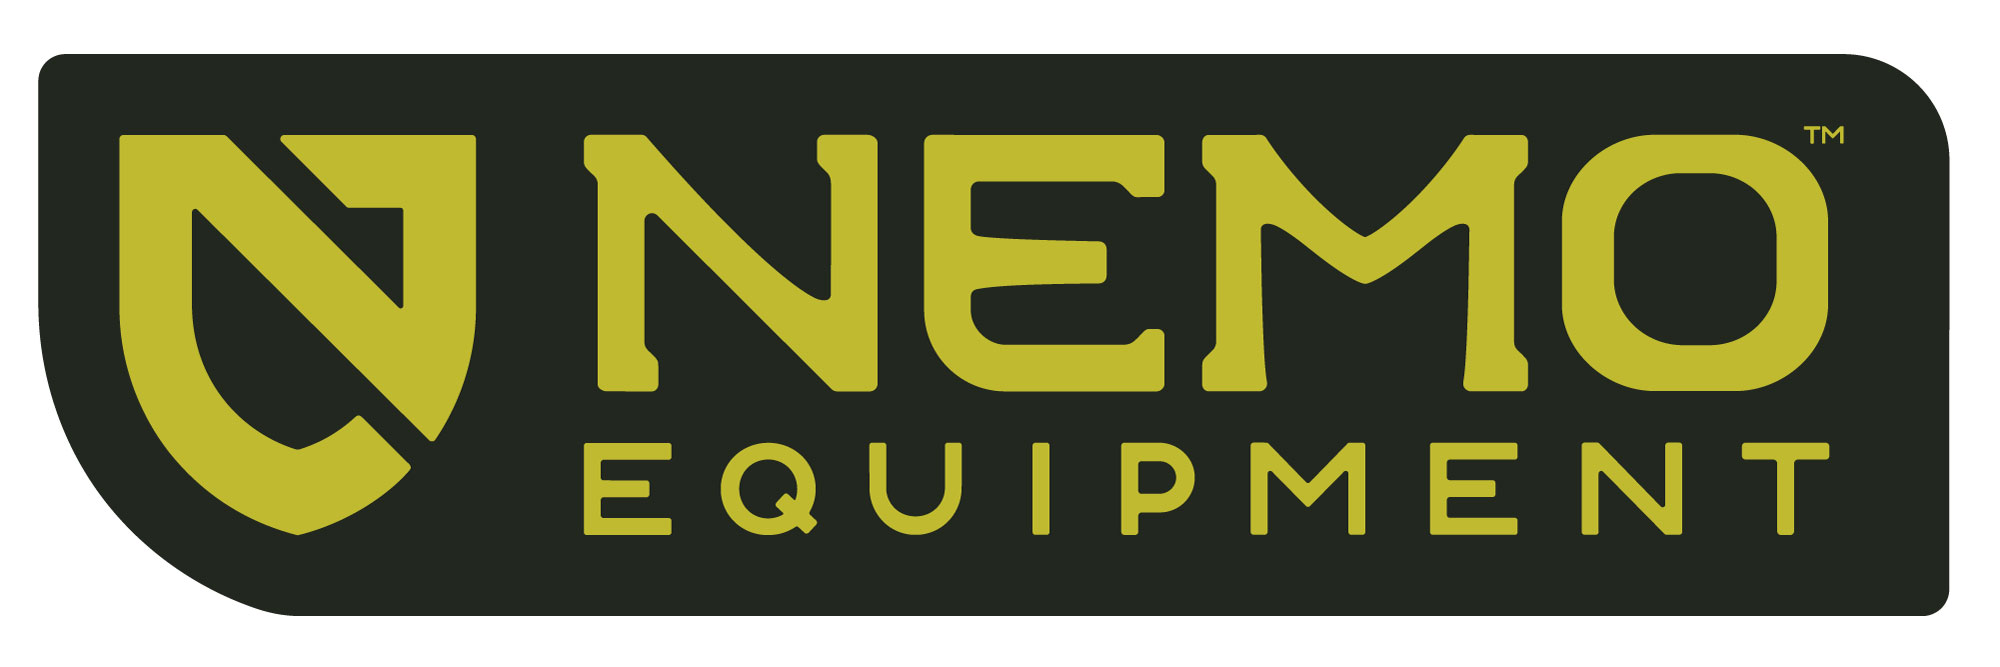 NEMO Equipment, Inc.